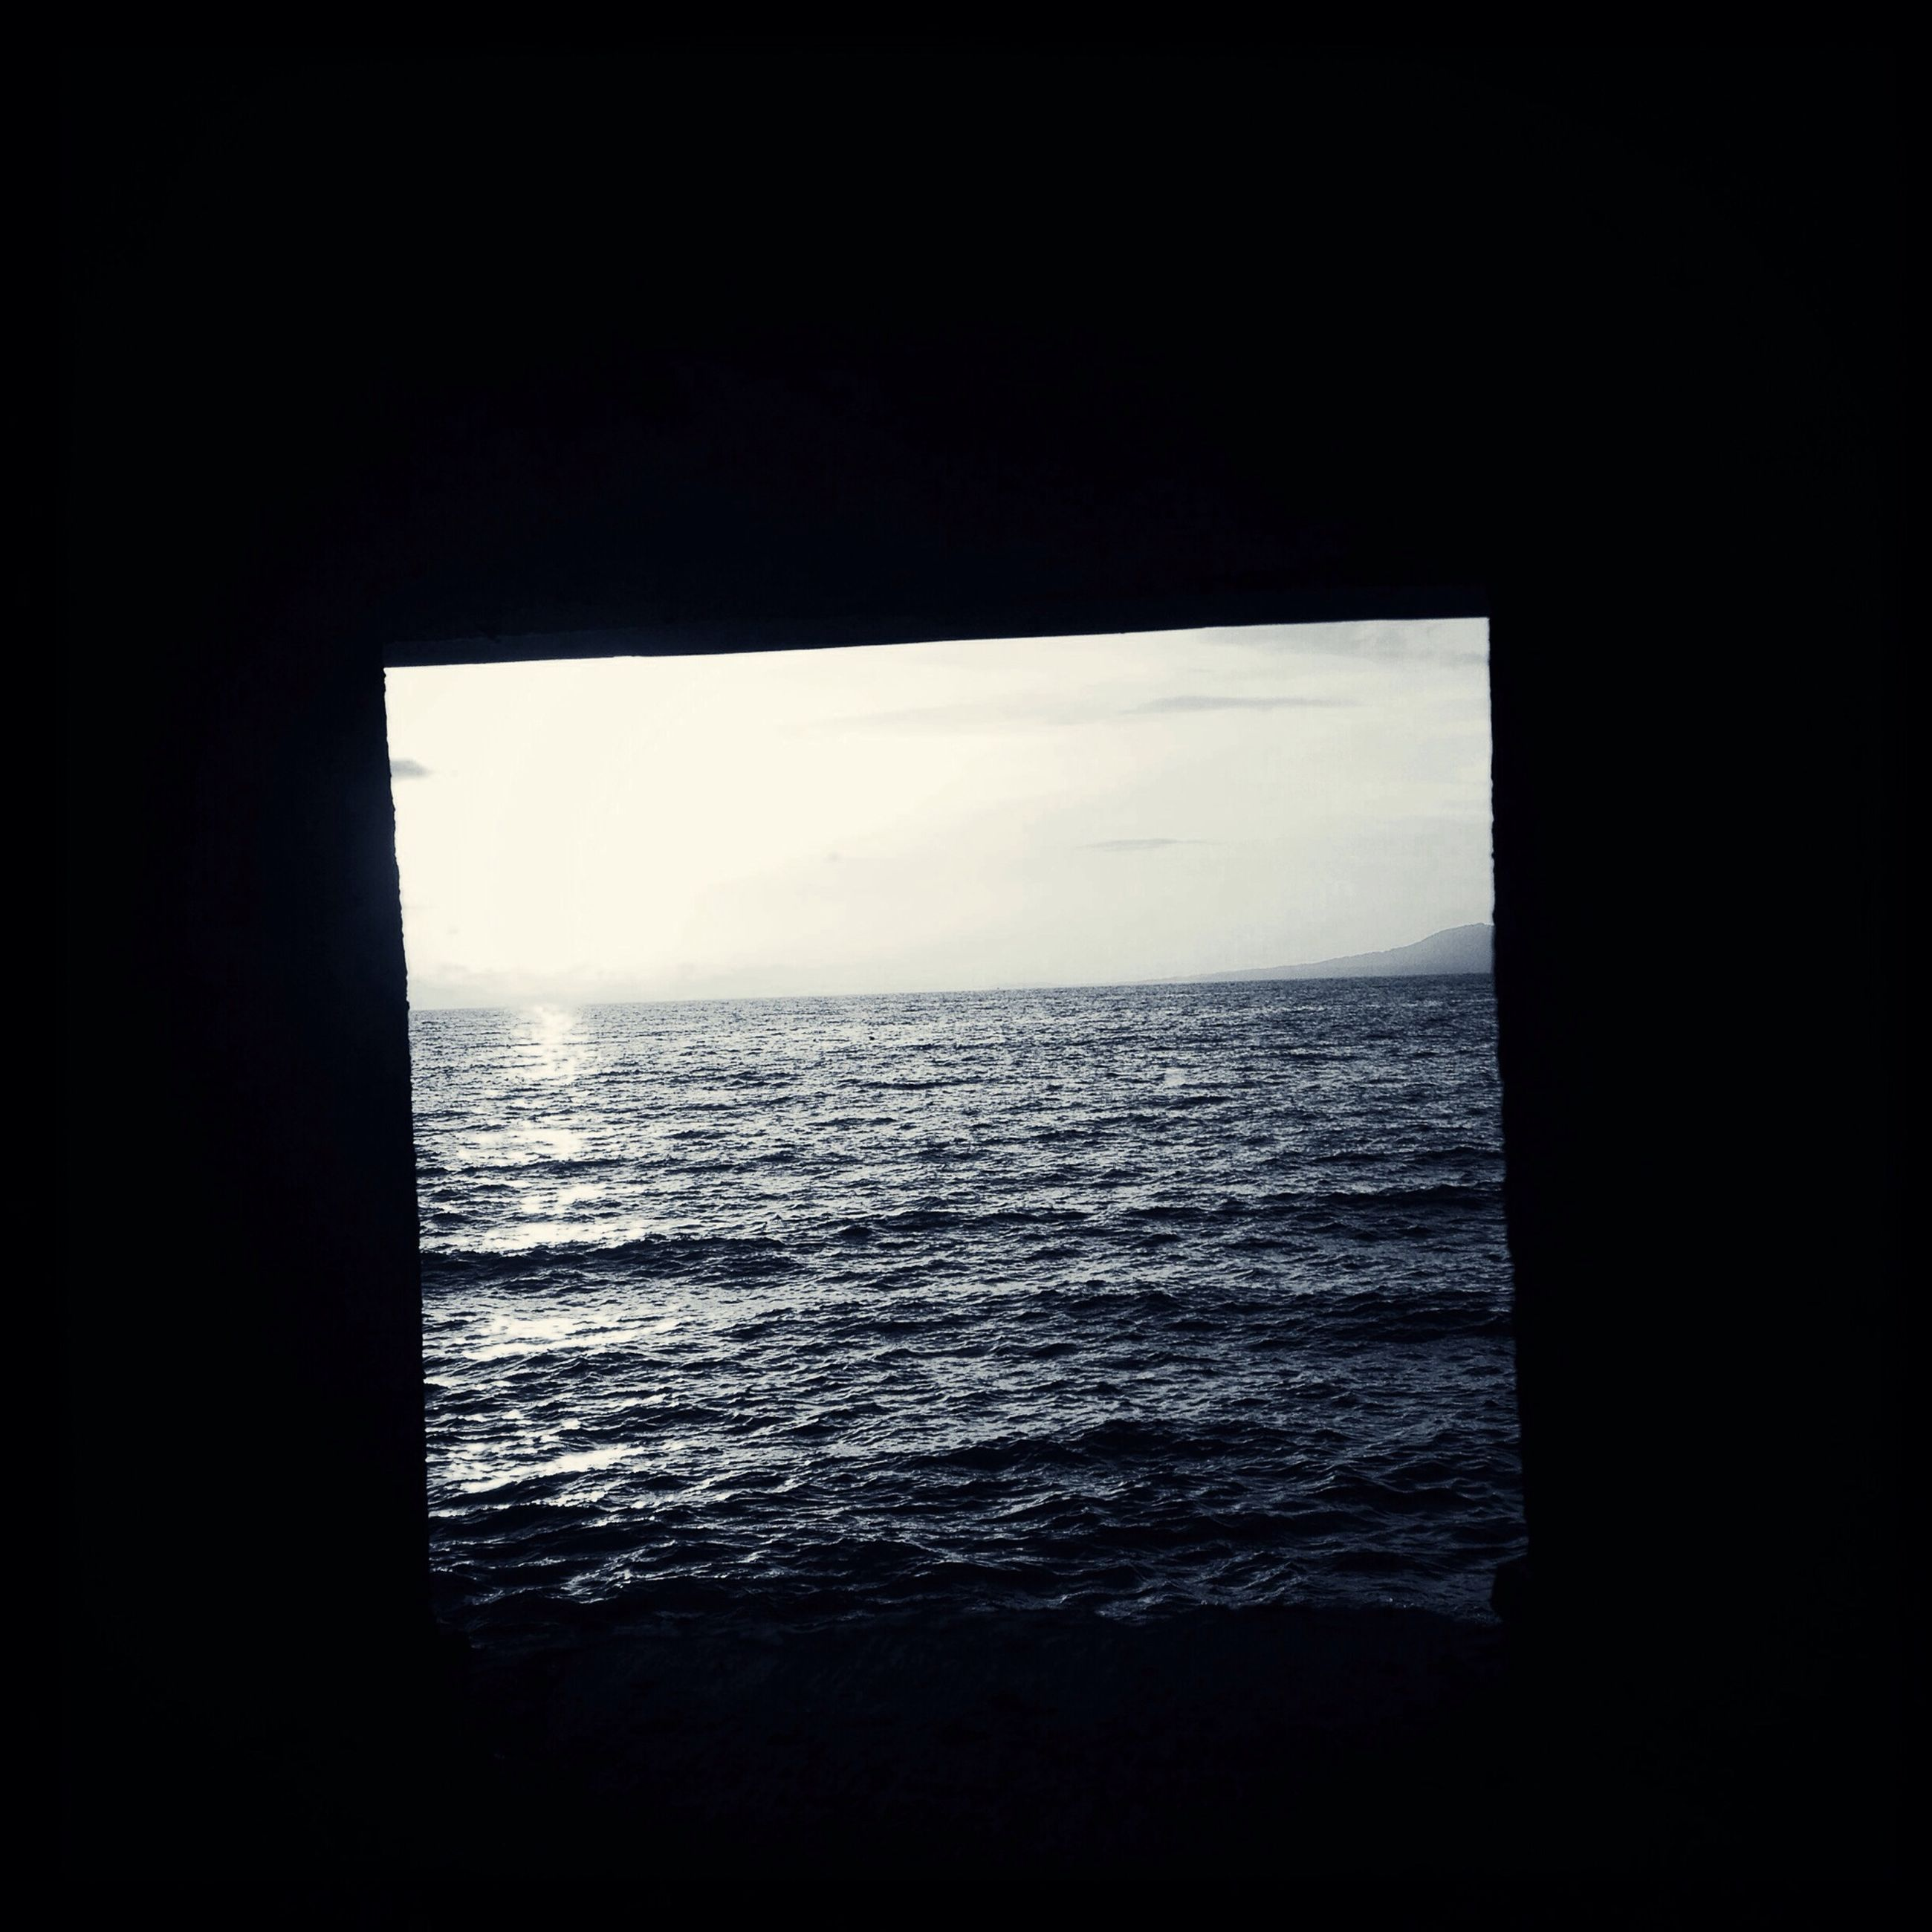 sea, horizon over water, water, scenics, tranquil scene, tranquility, beauty in nature, sky, nature, silhouette, copy space, rippled, idyllic, seascape, ocean, indoors, calm, window, dark, remote